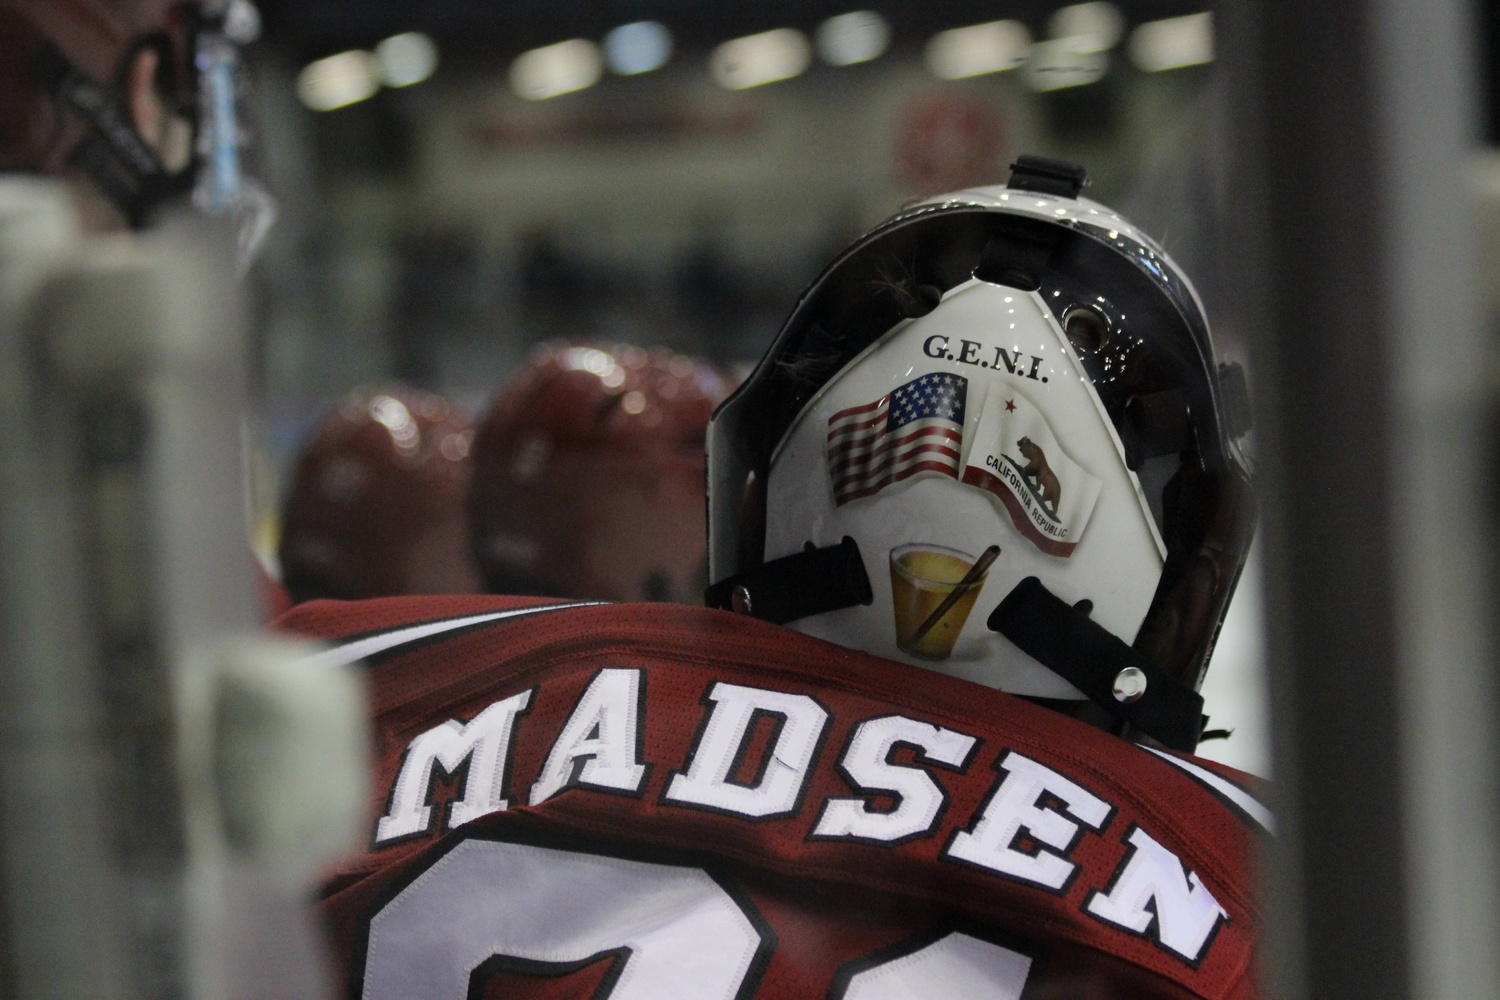 In addition to the G.E.N.I. acronym, the back of Merrick Madsen's helmet features the flag for his home state of California.